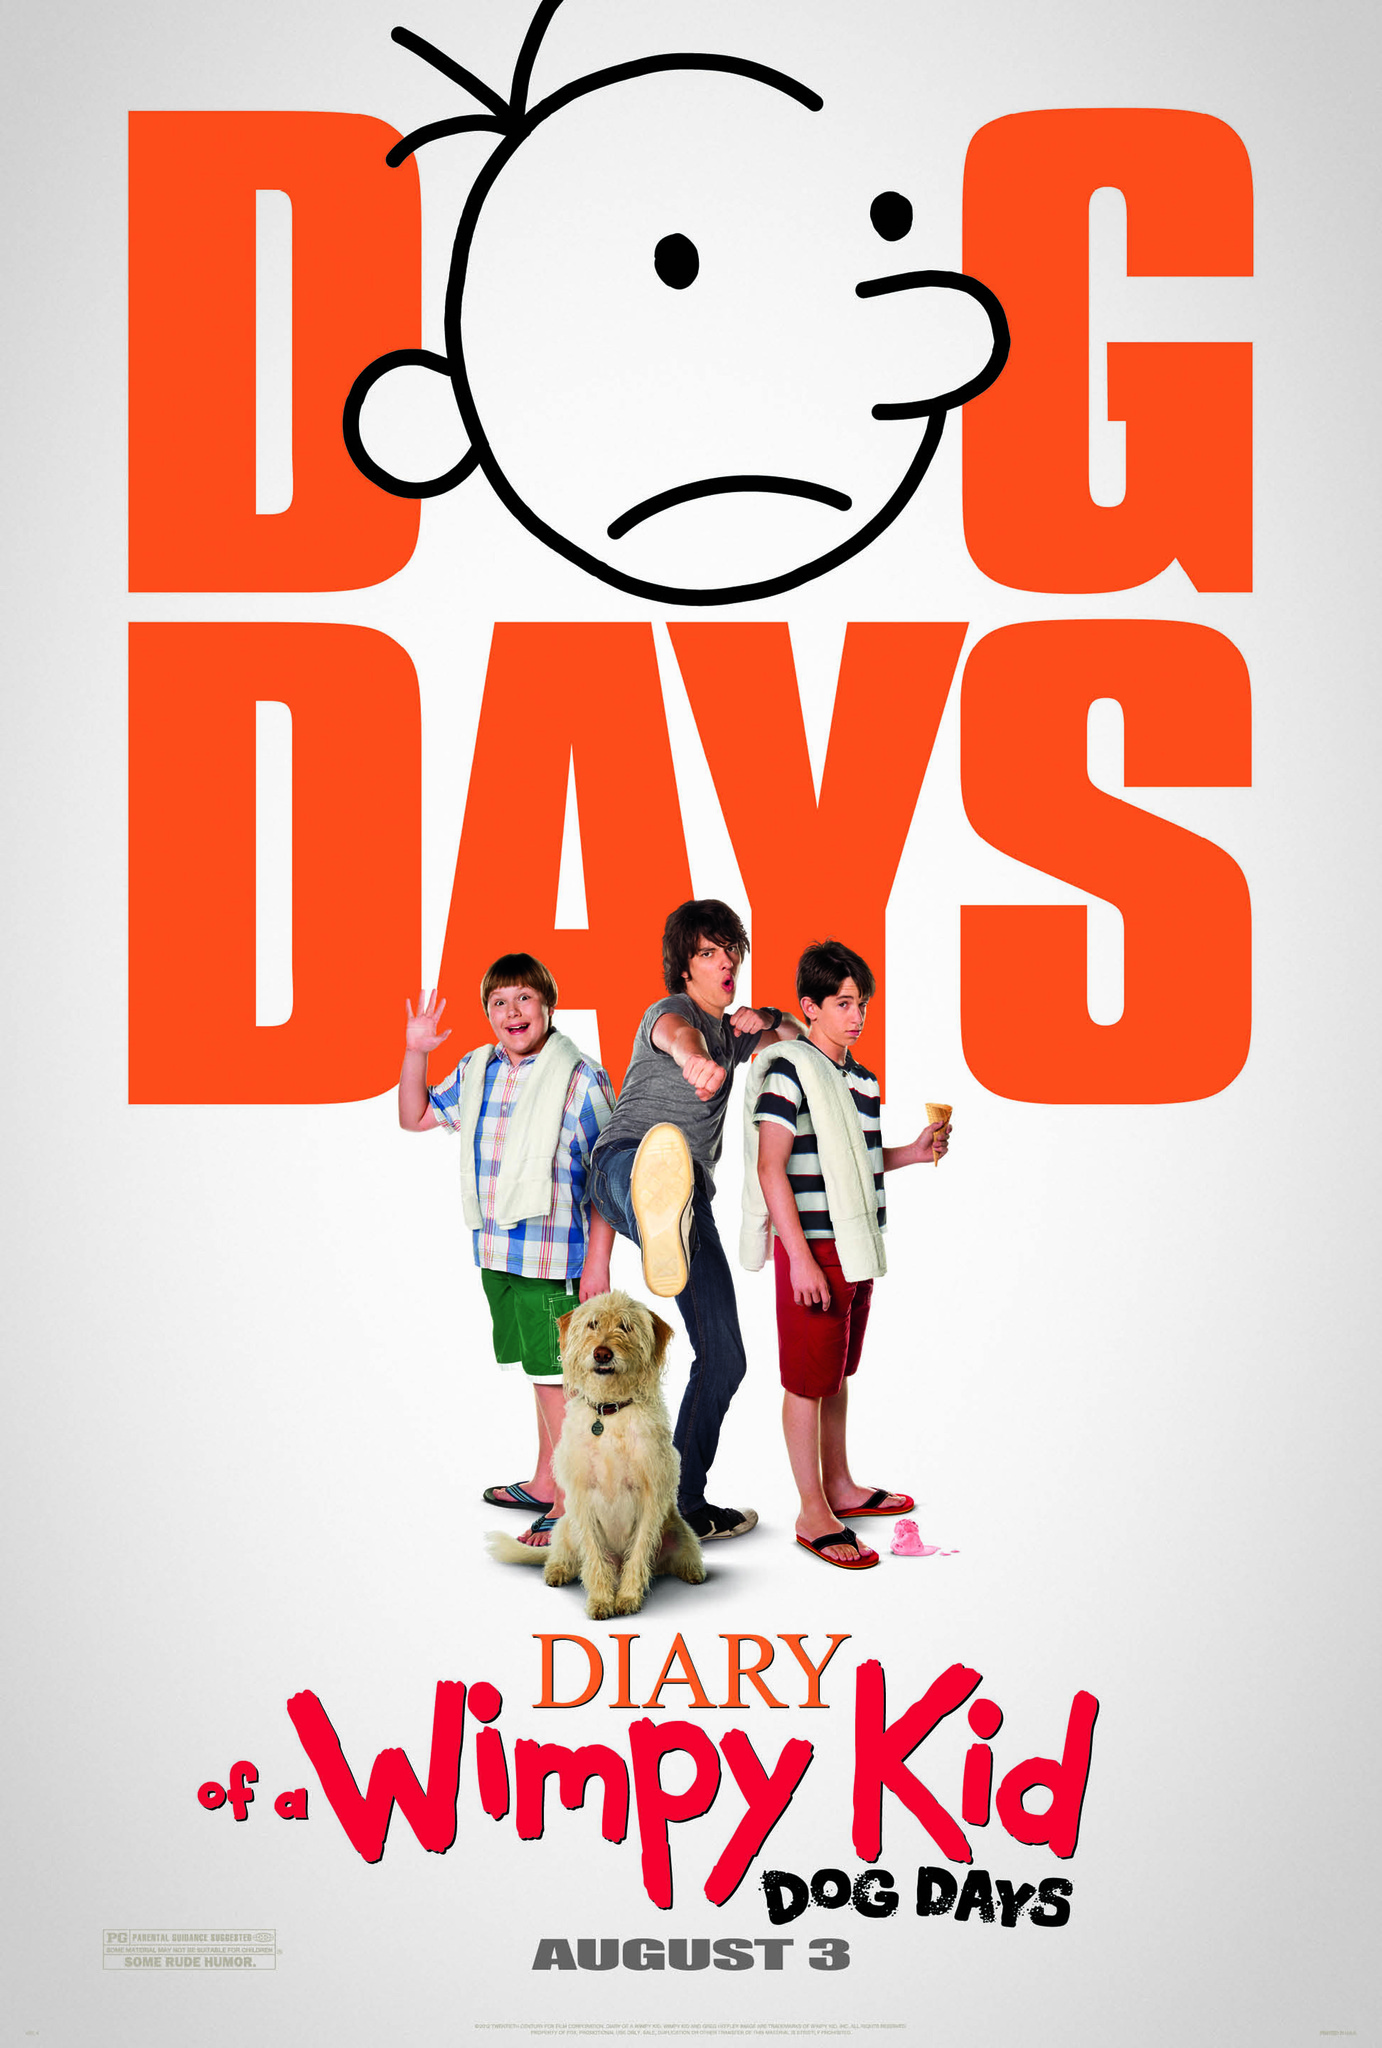 Dog days poster featuring sweetie the dog